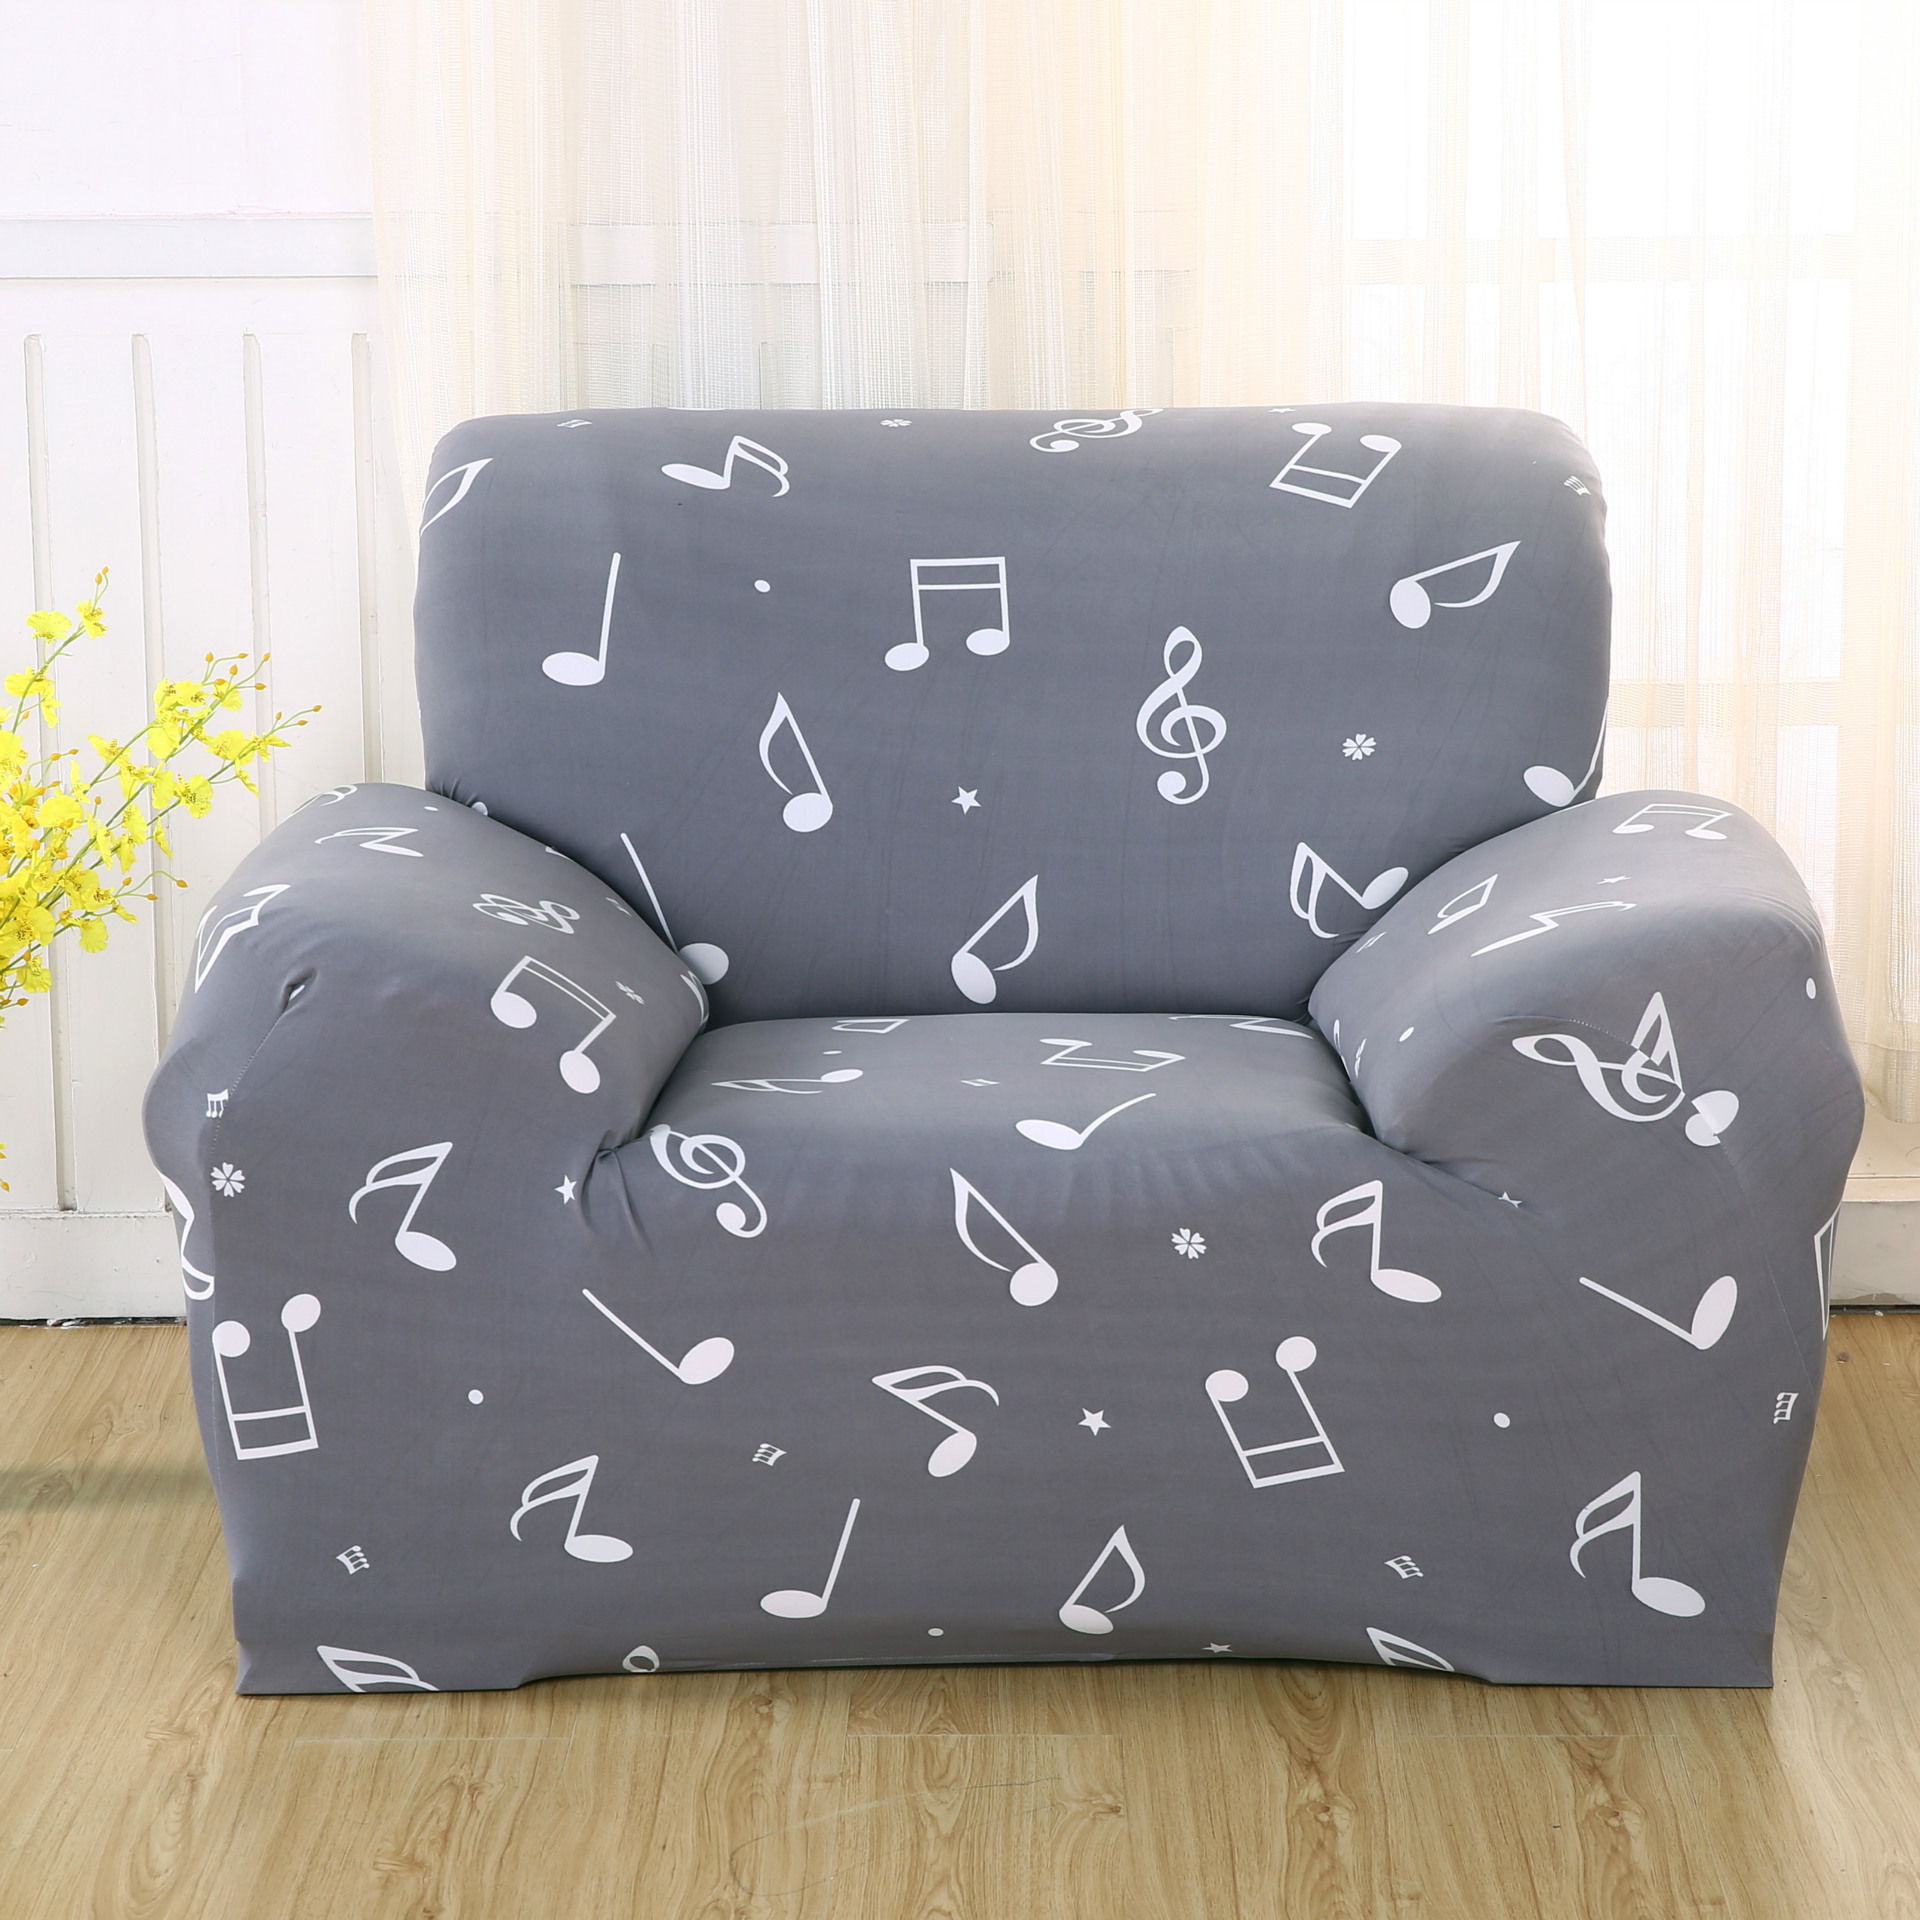 Modern Music Drawing Room Decorate Anti Mite Sofa Cover